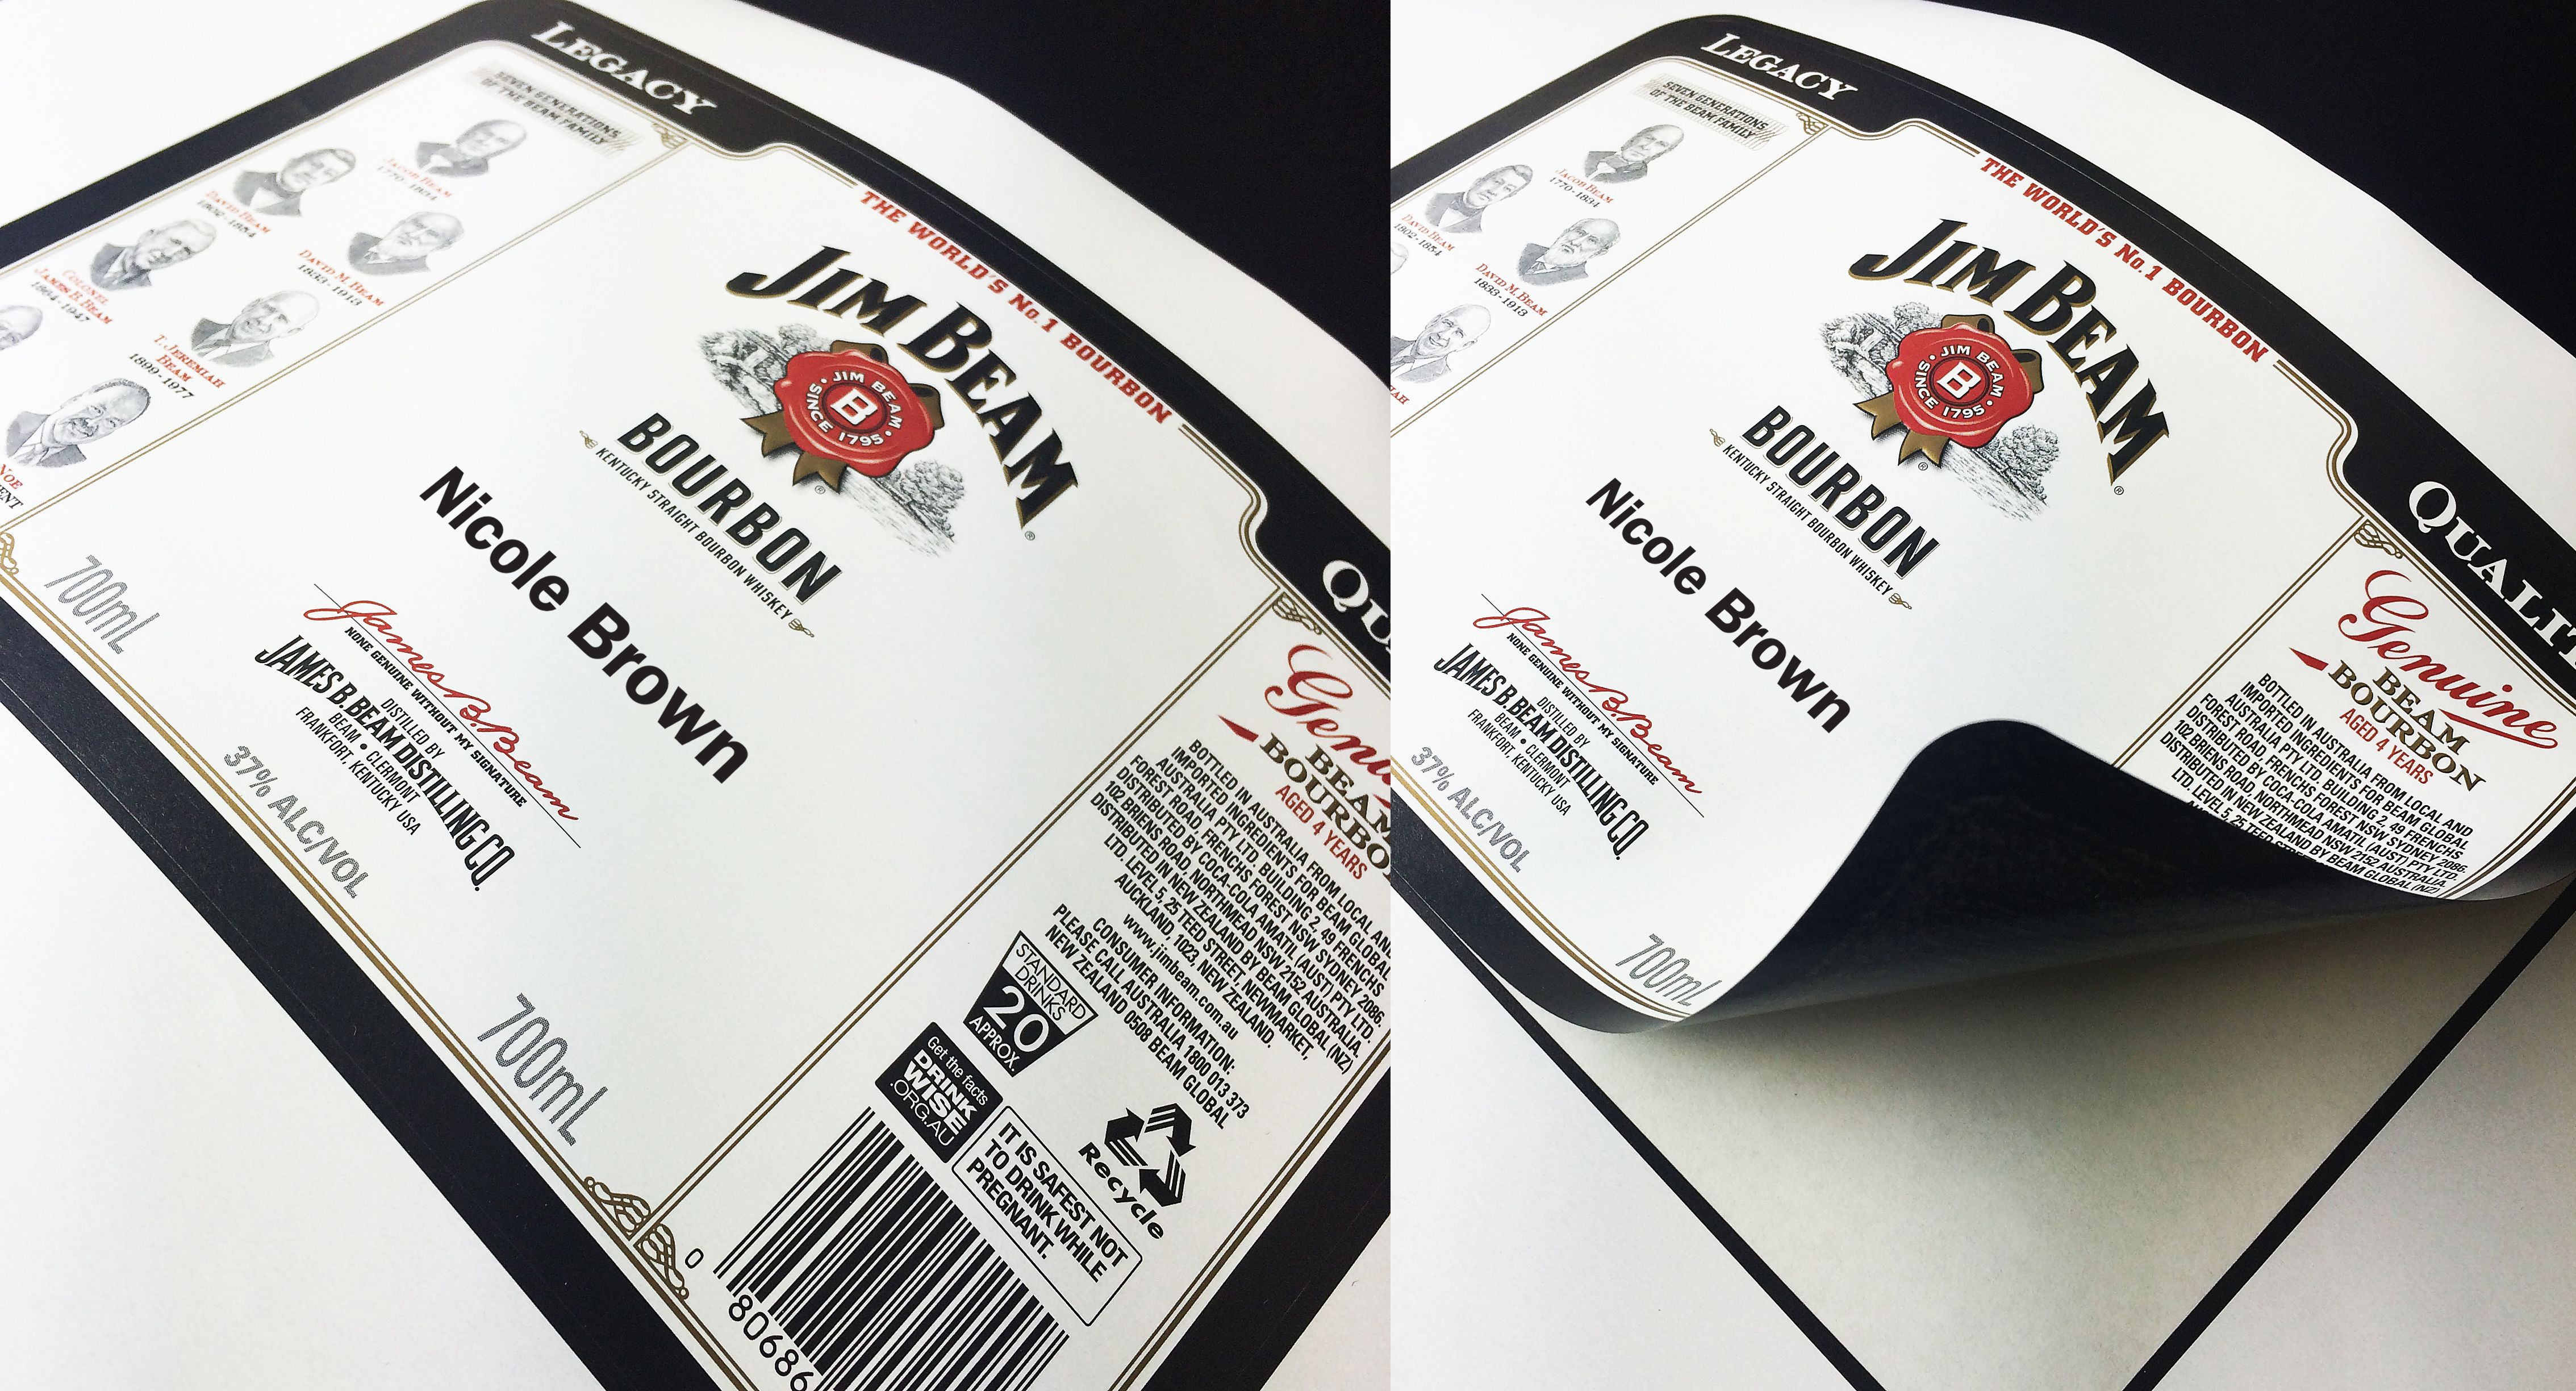 Personalised Labels For Jim Beam Bourbon Printed On Adestor Vellum Opaque By Clarke Murphy Print Personalized Labels Wine Boutique Cricut Tutorials